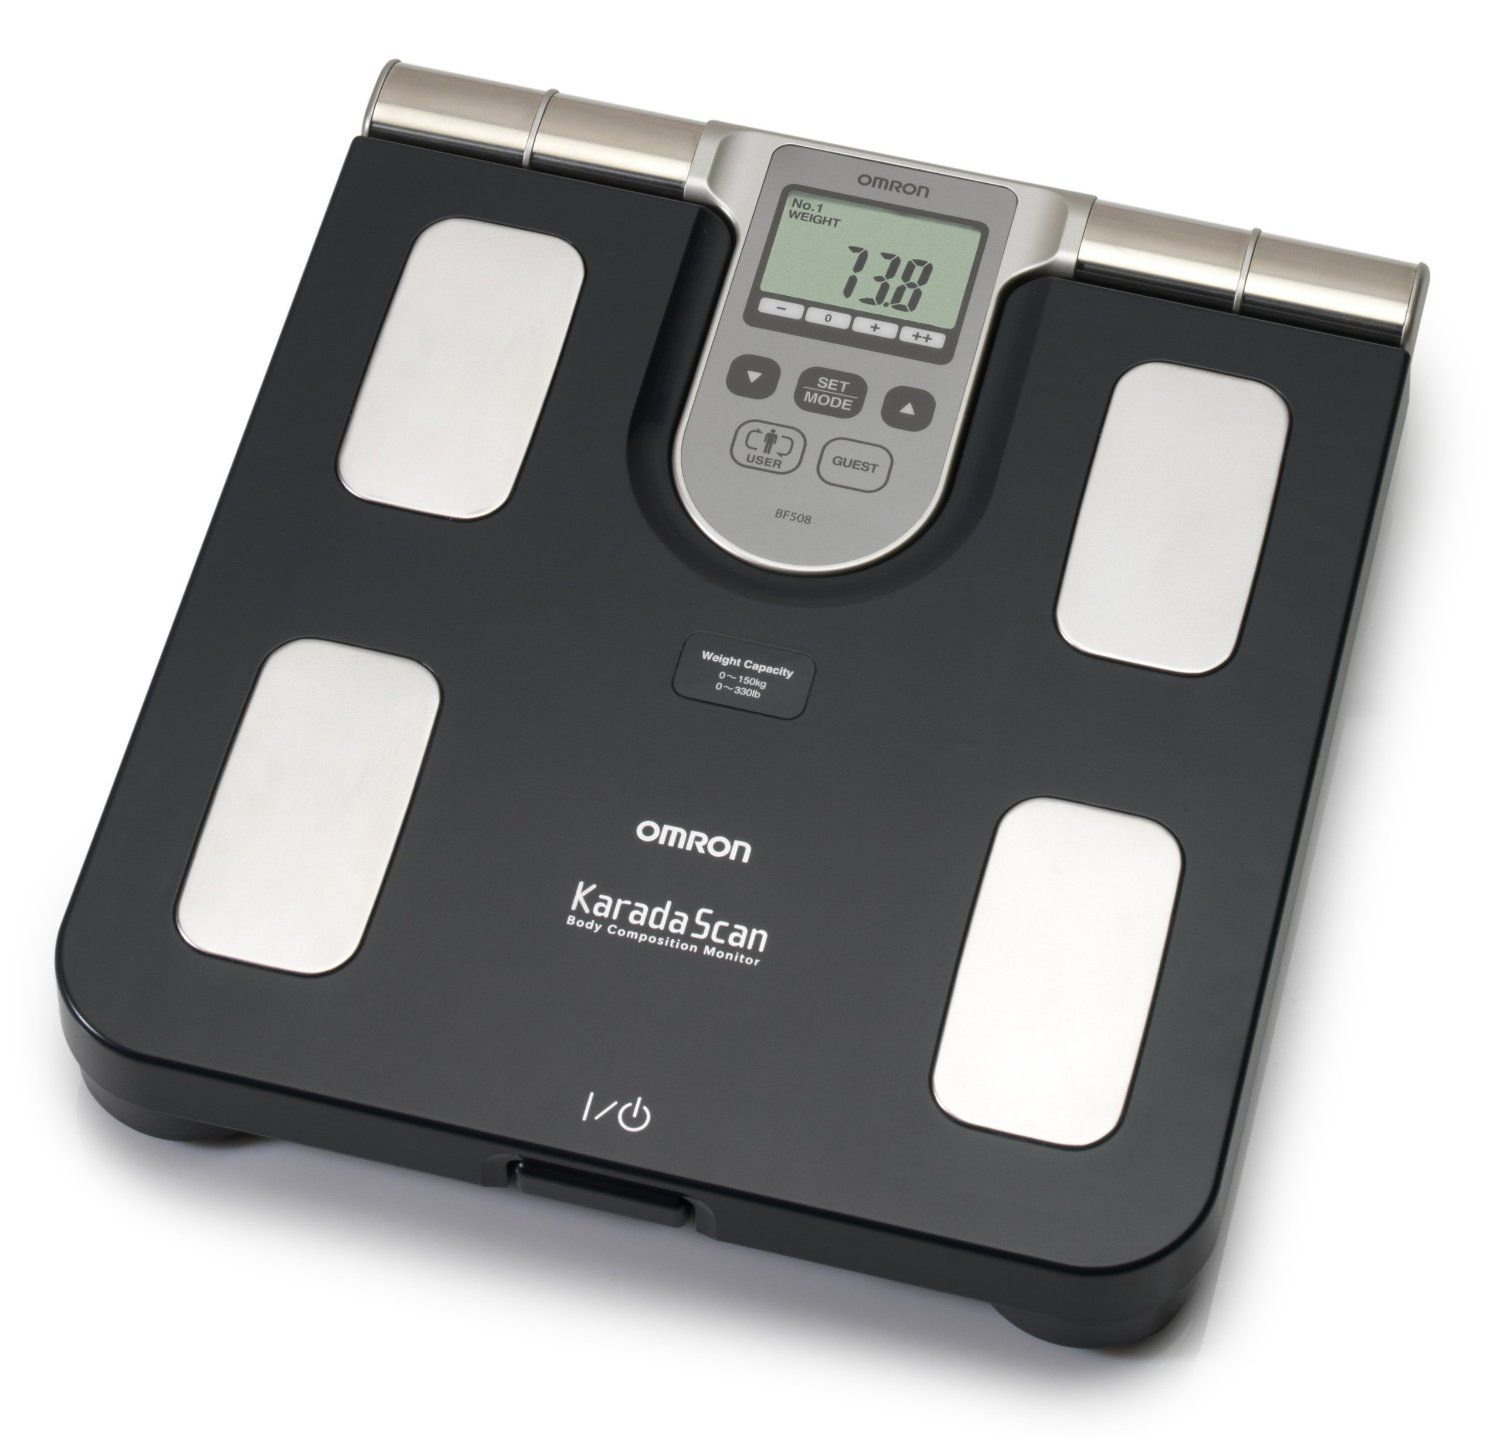 Omron bf508 body composition and body fat monitor bathroom scale amazon co uk